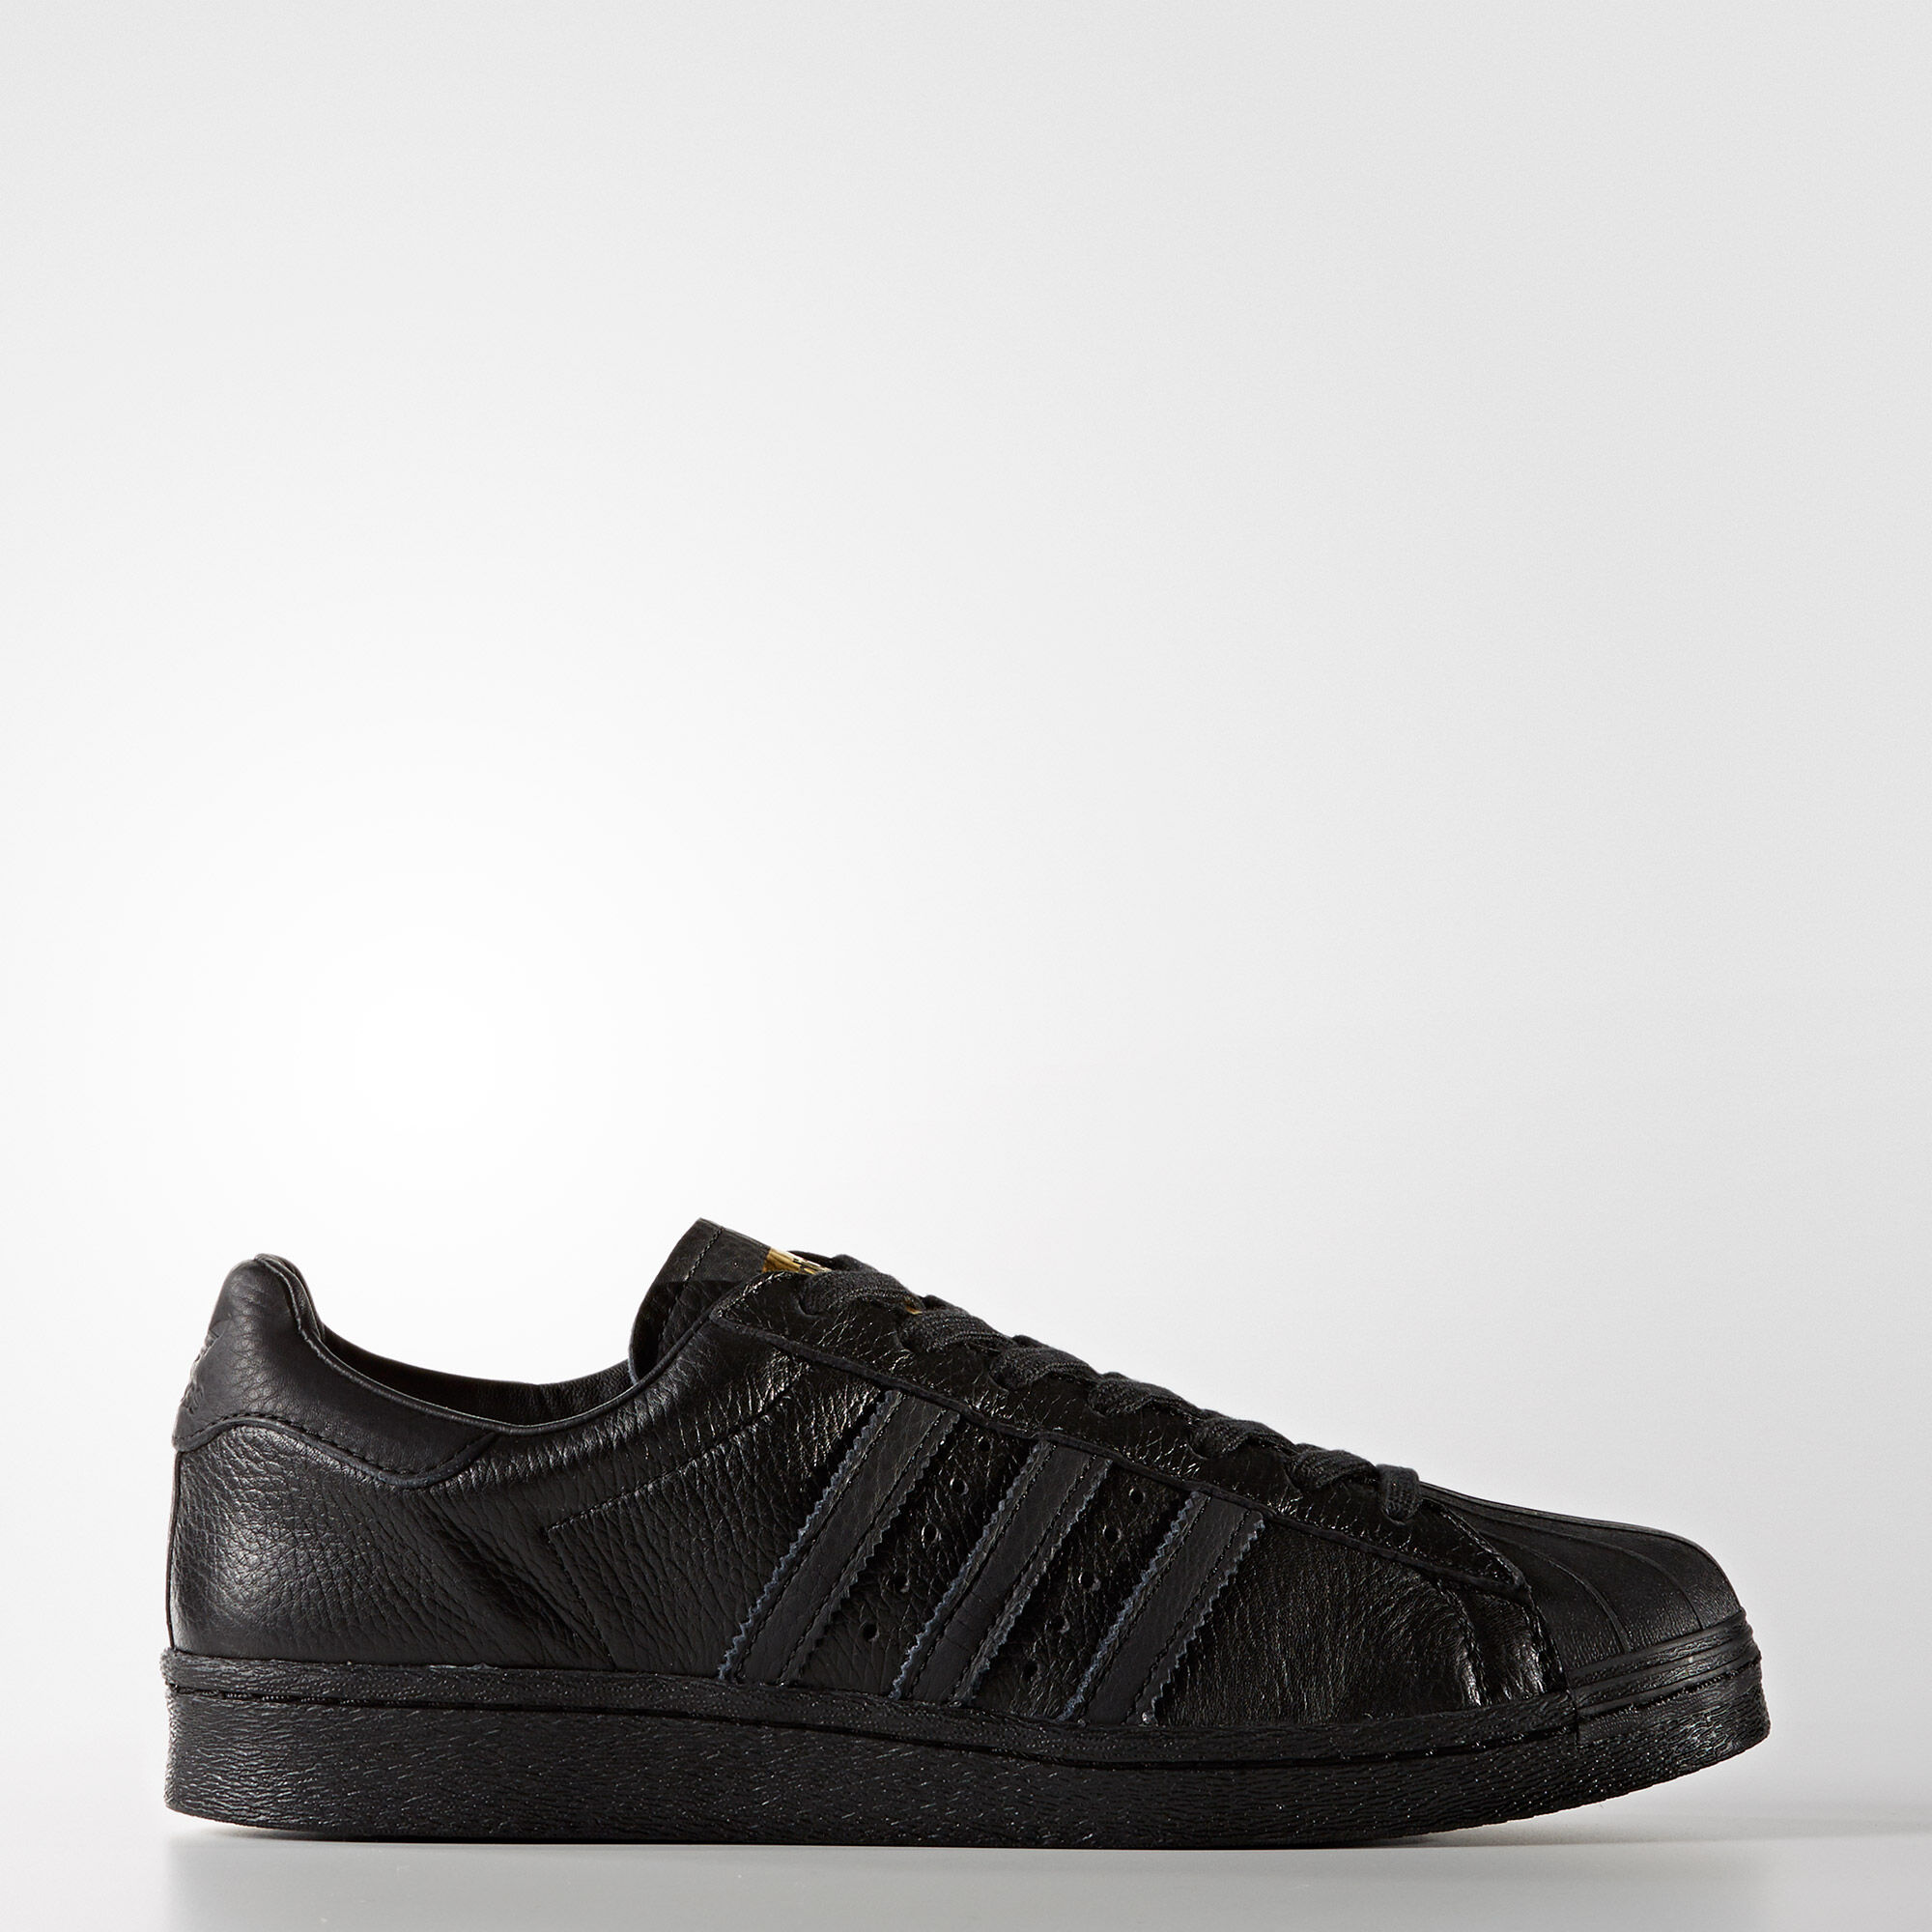 adidas superstar black gold